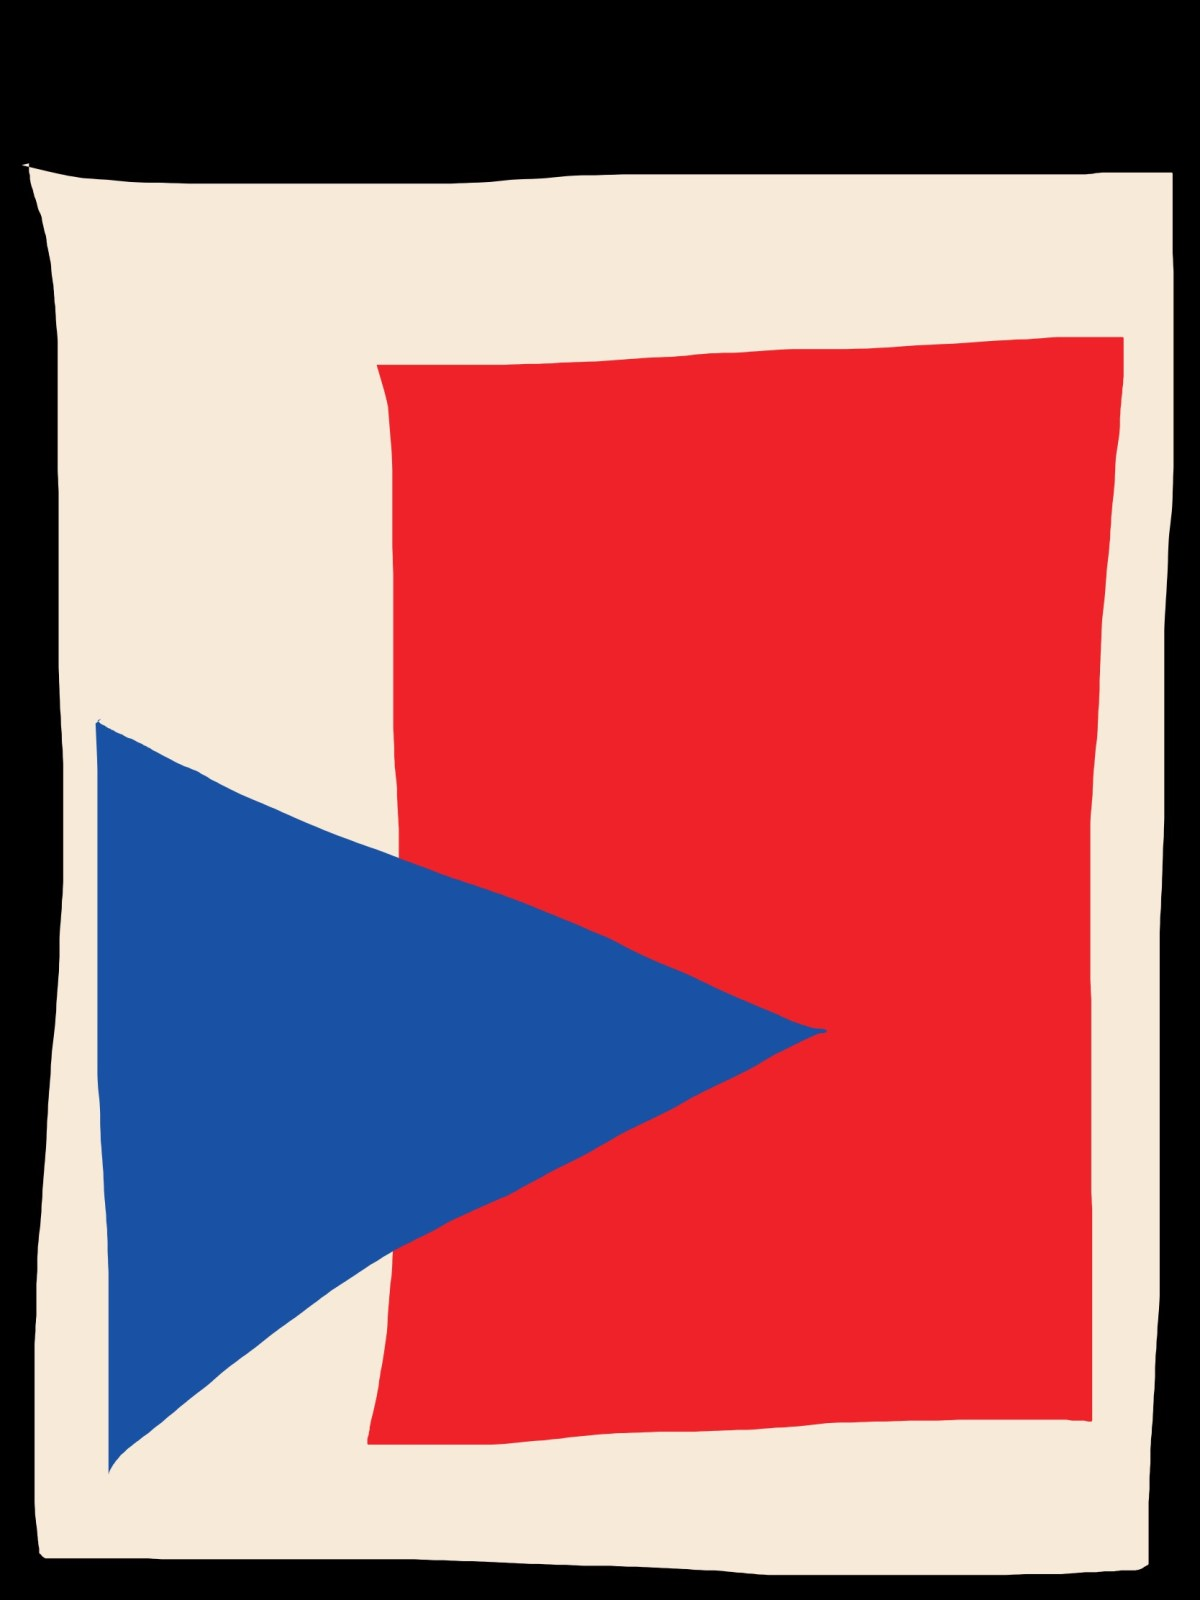 Blue triangle complements the red rectangle.